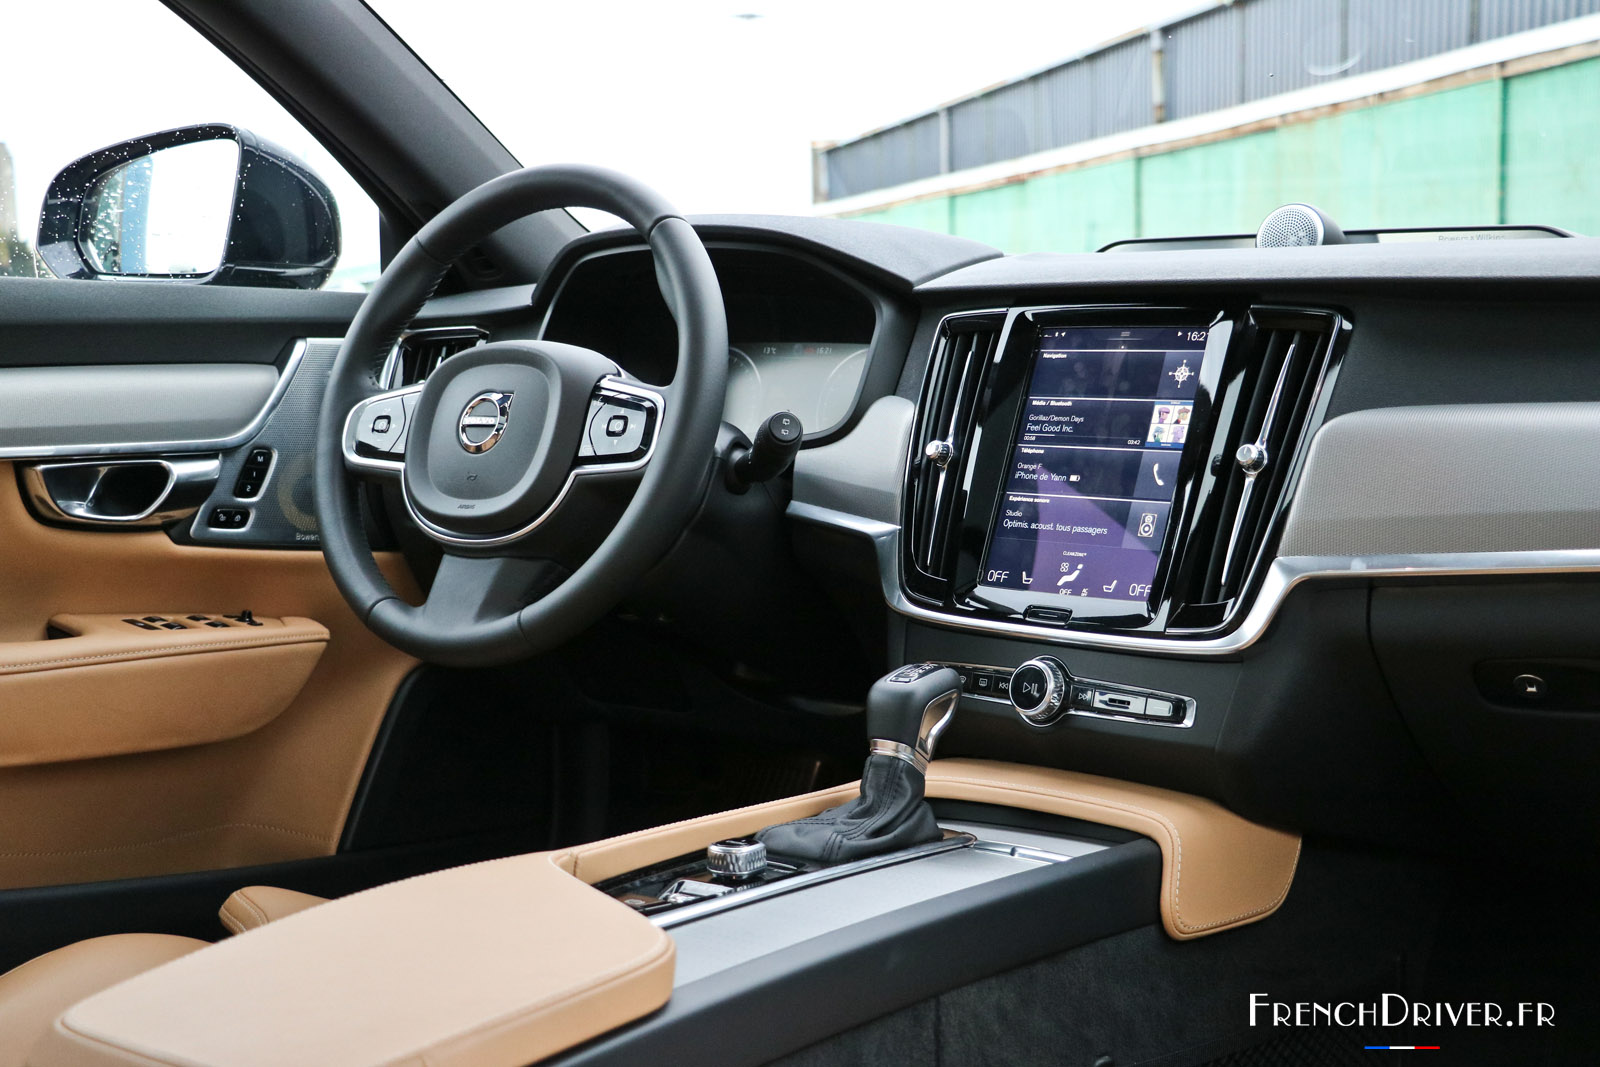 essai volvo v90 t6 la belle la brute et la scandinave french driver. Black Bedroom Furniture Sets. Home Design Ideas